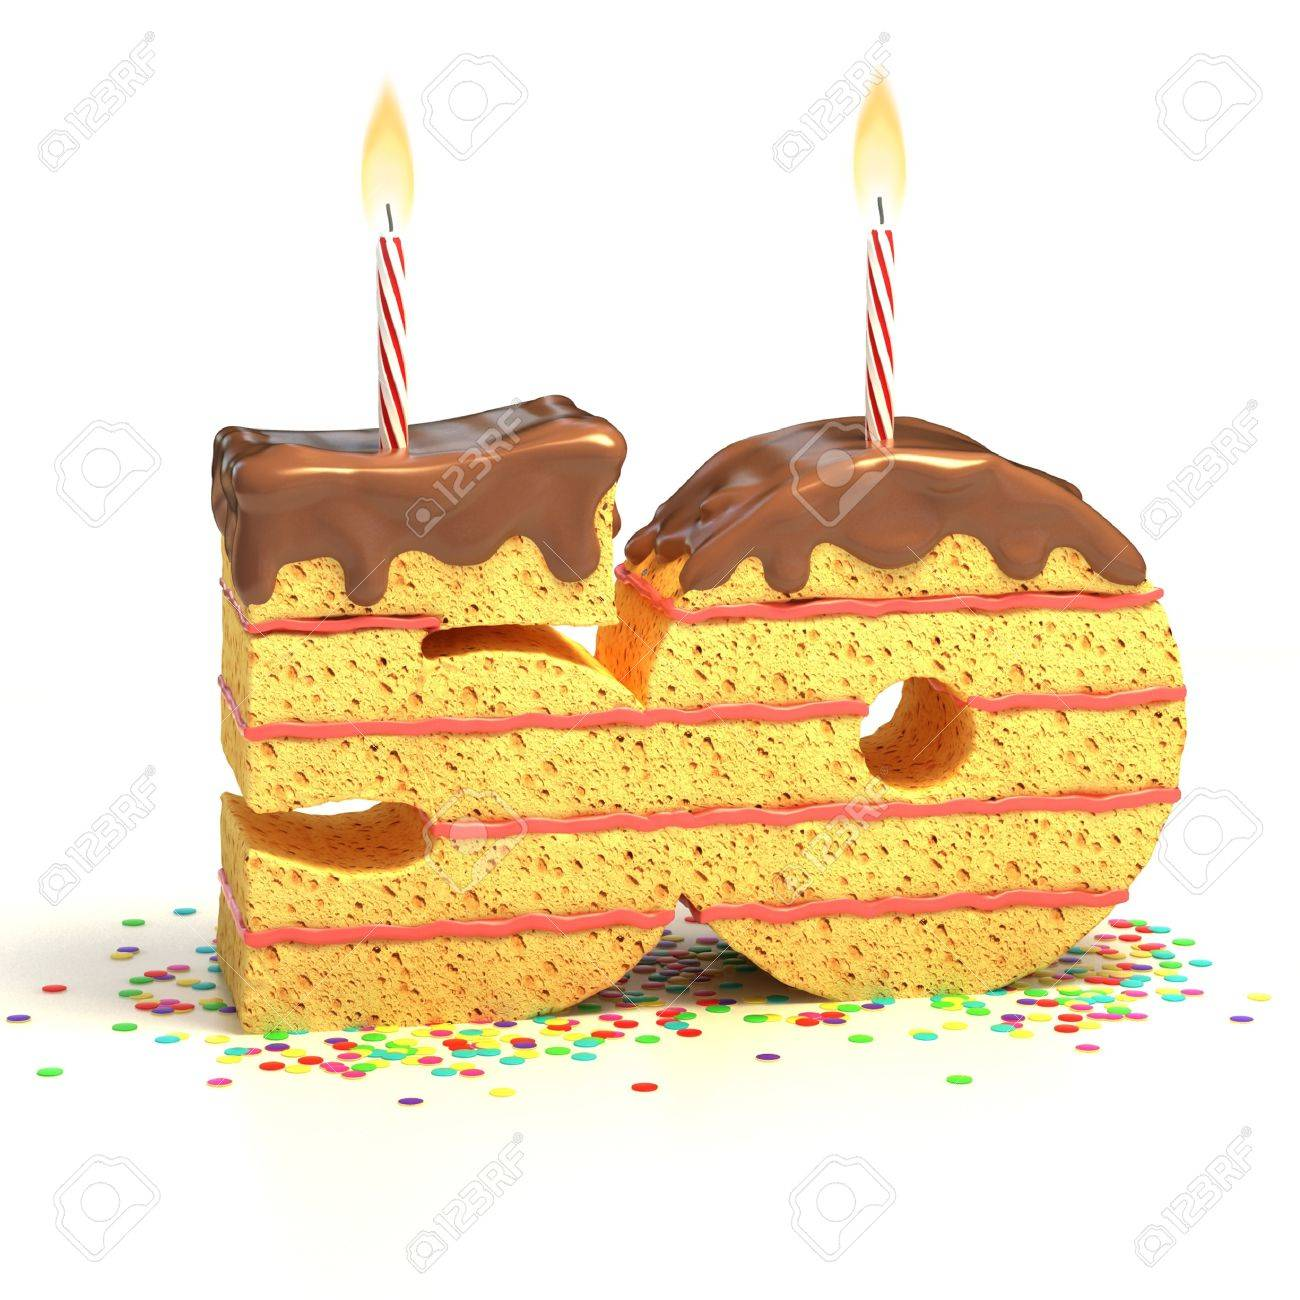 Chocolate Birthday Cake Surrounded By Confetti With Lit Candle For A Fiftieth Or Anniversary Celebration